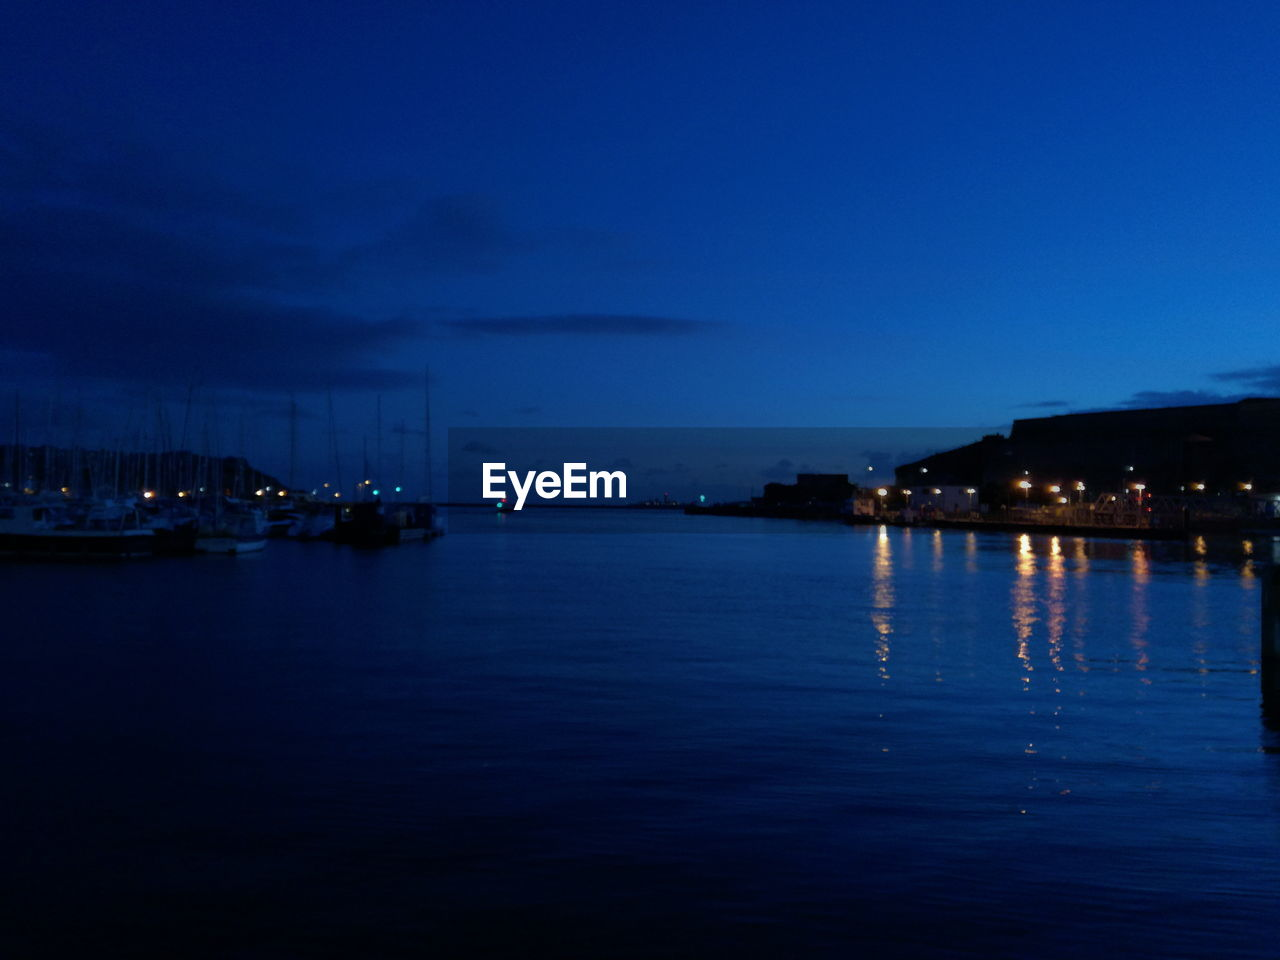 night, illuminated, water, blue, architecture, no people, sky, built structure, nautical vessel, building exterior, outdoors, transportation, tranquility, sea, nature, beauty in nature, harbor, travel destinations, yacht, scenics, city